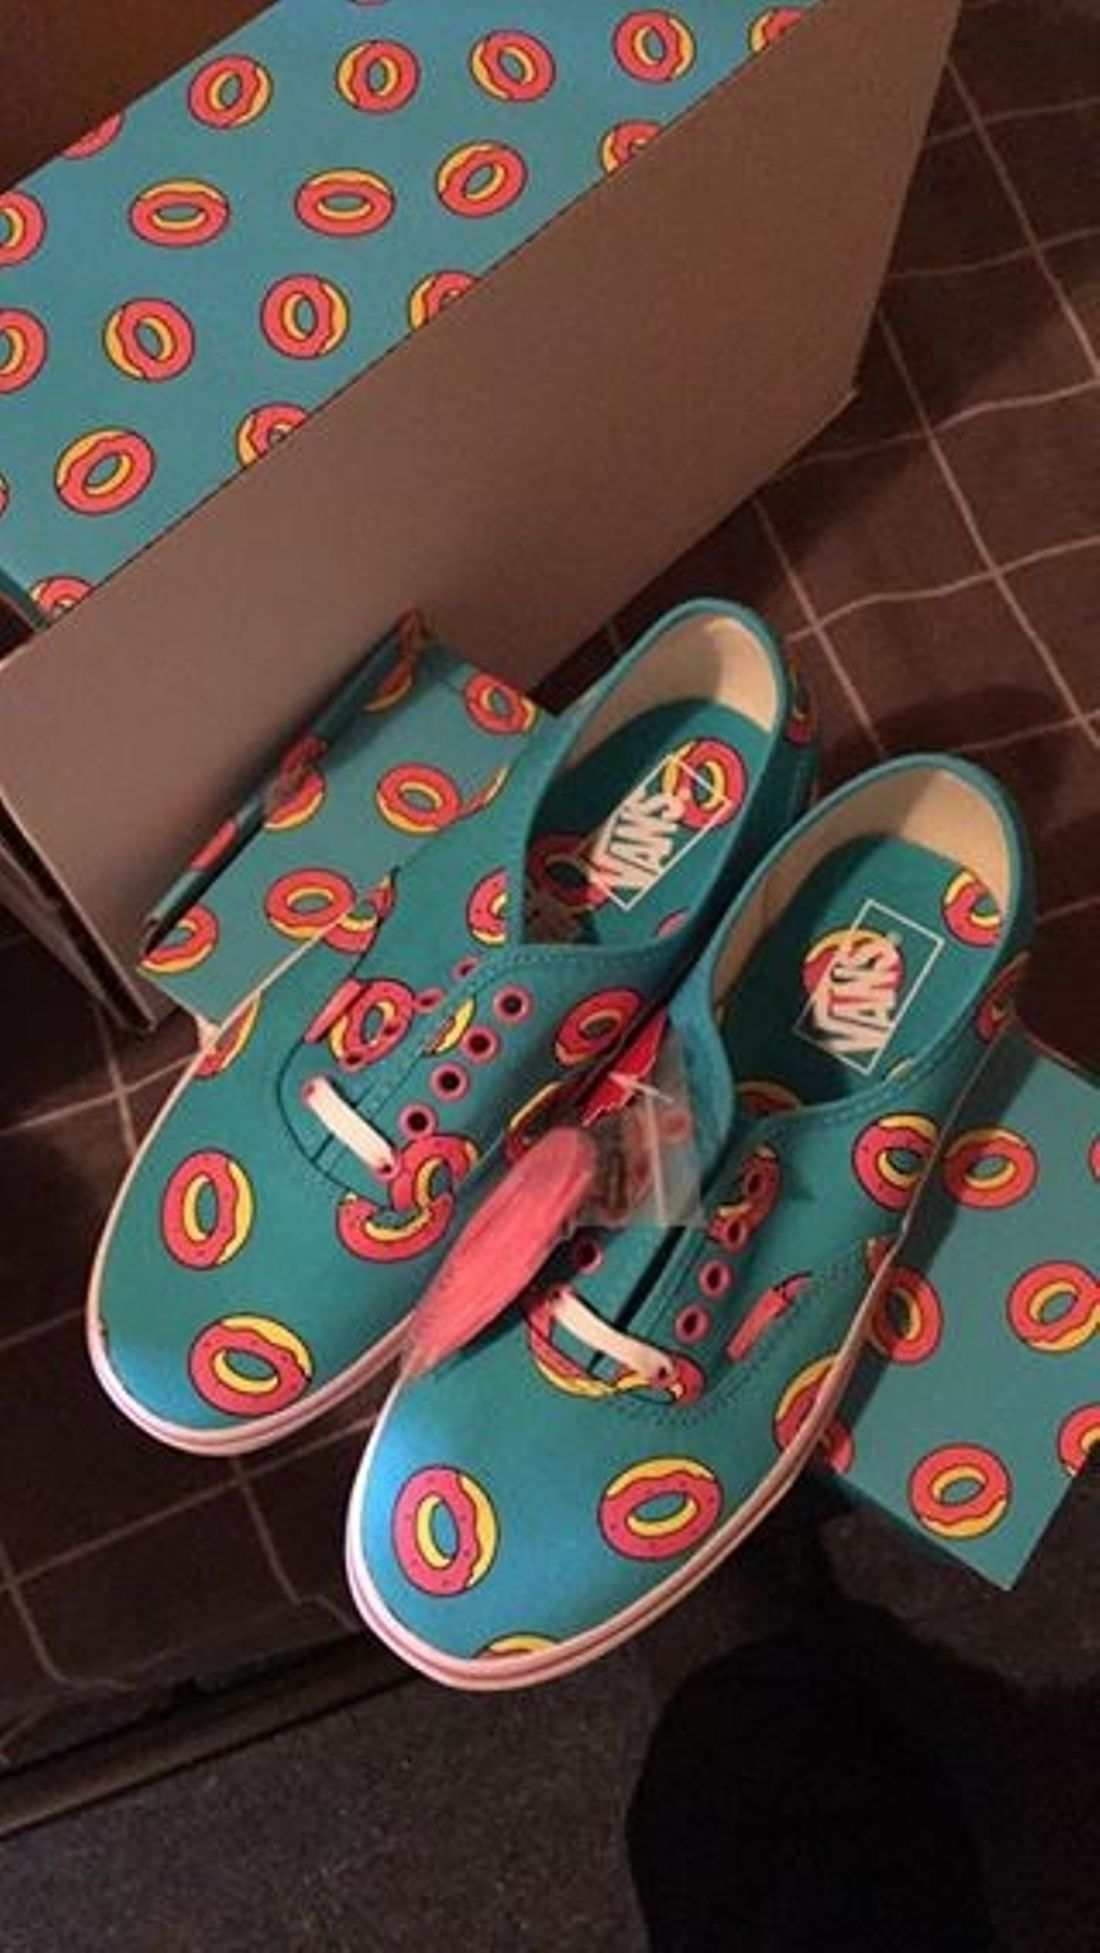 14d6e66e04ad97 Odd Future × Vans Vans X Odd Future (Donut) Size 9  100 - Grailed. Find  this Pin and more on Men s Fashion by Emily Pugh. Tags. Skate Shoes